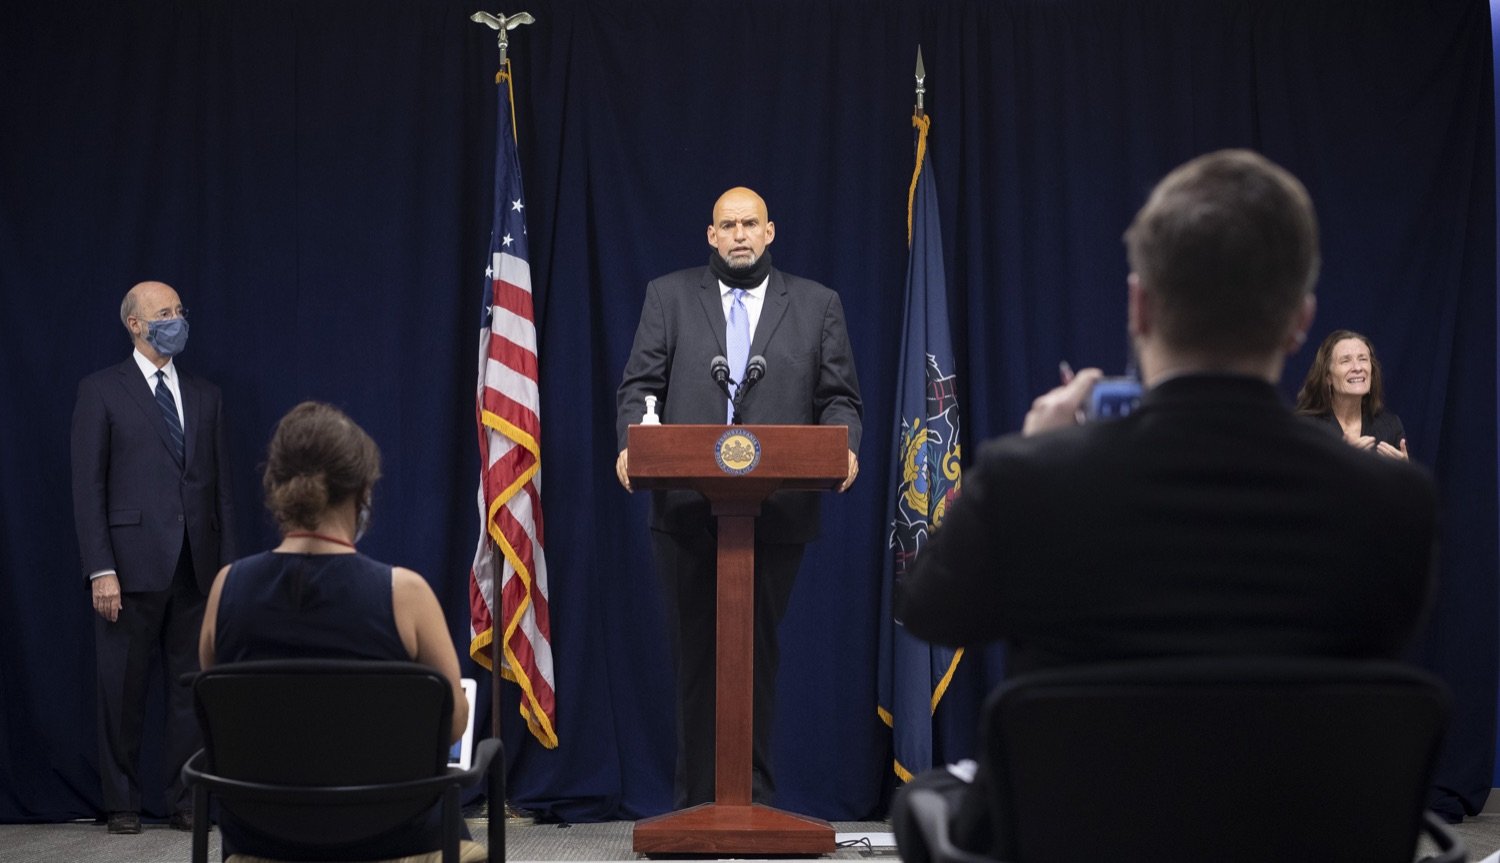 """<a href=""""https://filesource.wostreaming.net/commonwealthofpa/photo/18239_gov_recMarijuana_dz_024.jpg"""" target=""""_blank"""">⇣Download Photo<br></a>Lt. Gov. John Fetterman speaking with the press. Governor Tom Wolf and Lt. Governor John Fetterman today called on the legislature to take up the legalization of adult-use cannabis to help with the states economic recovery amid COVID-19. Legalization will also create more outlets for important restorative justice programs in the commonwealth.  Harrisburg, PA  Sept. 3, 2020"""